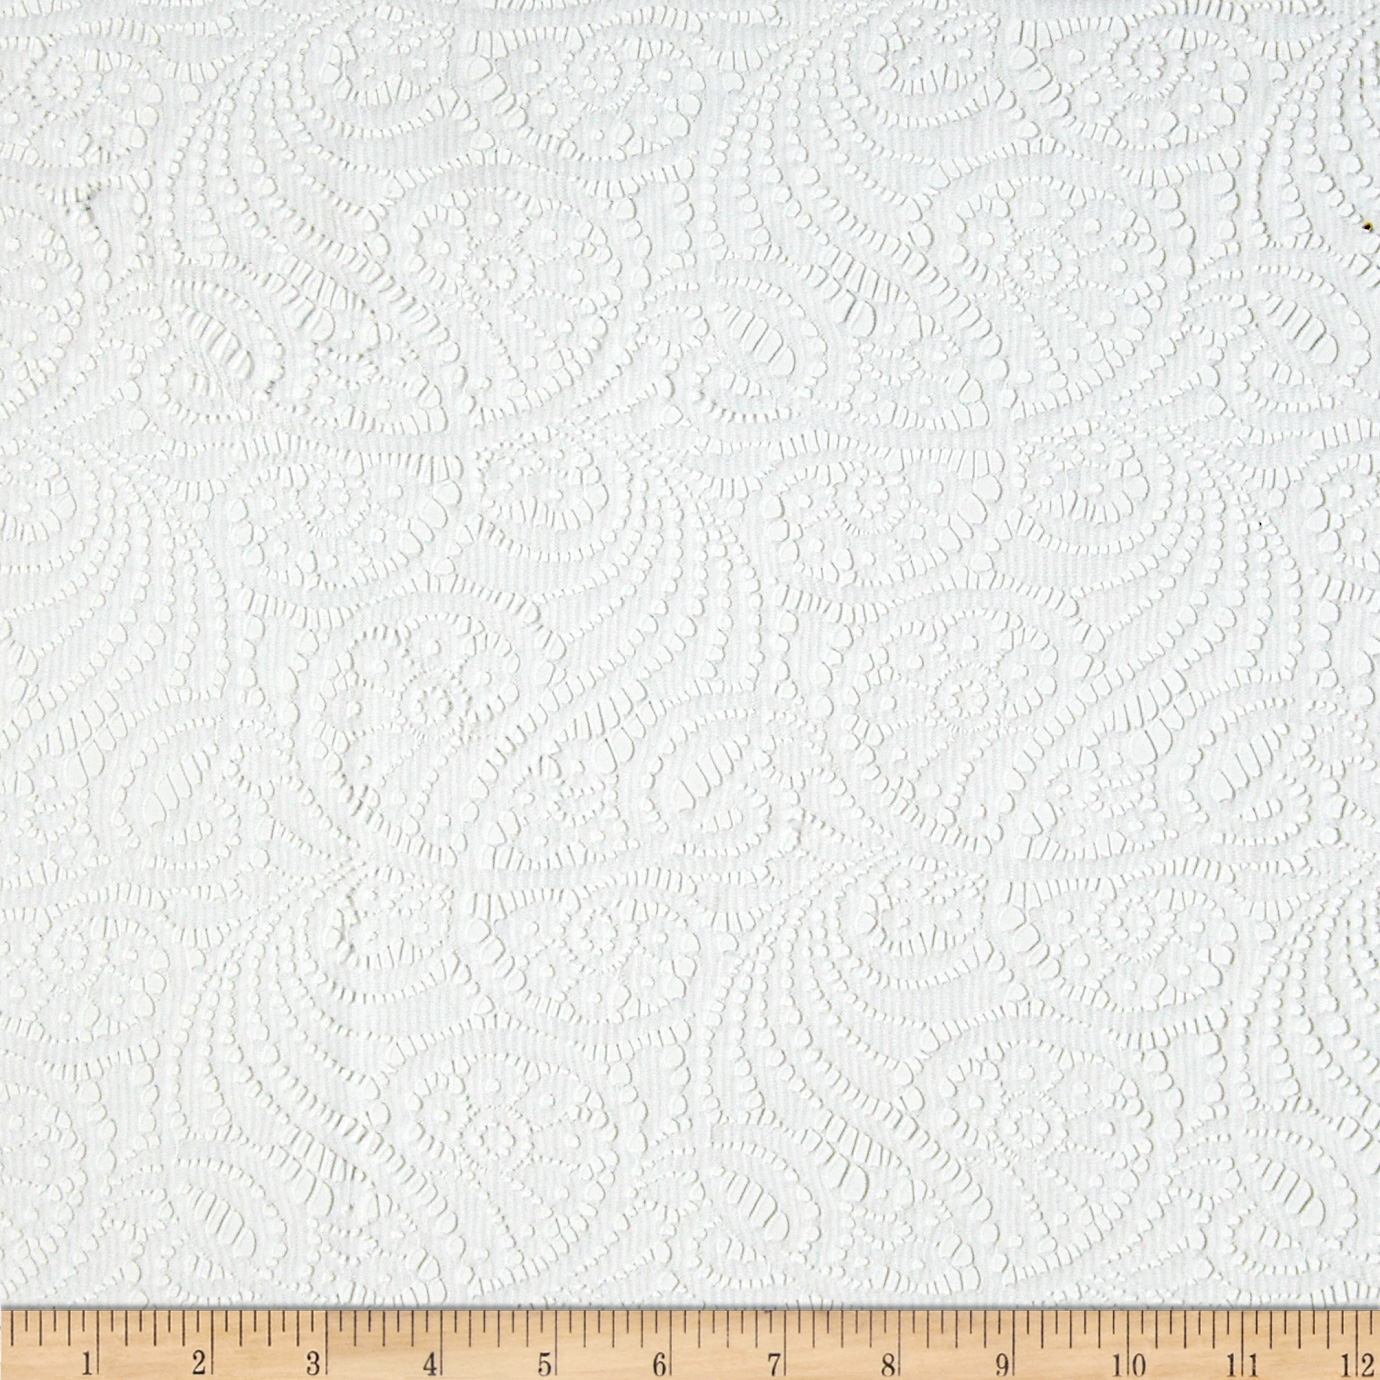 Designer Doily Lace Flourish White Fabric